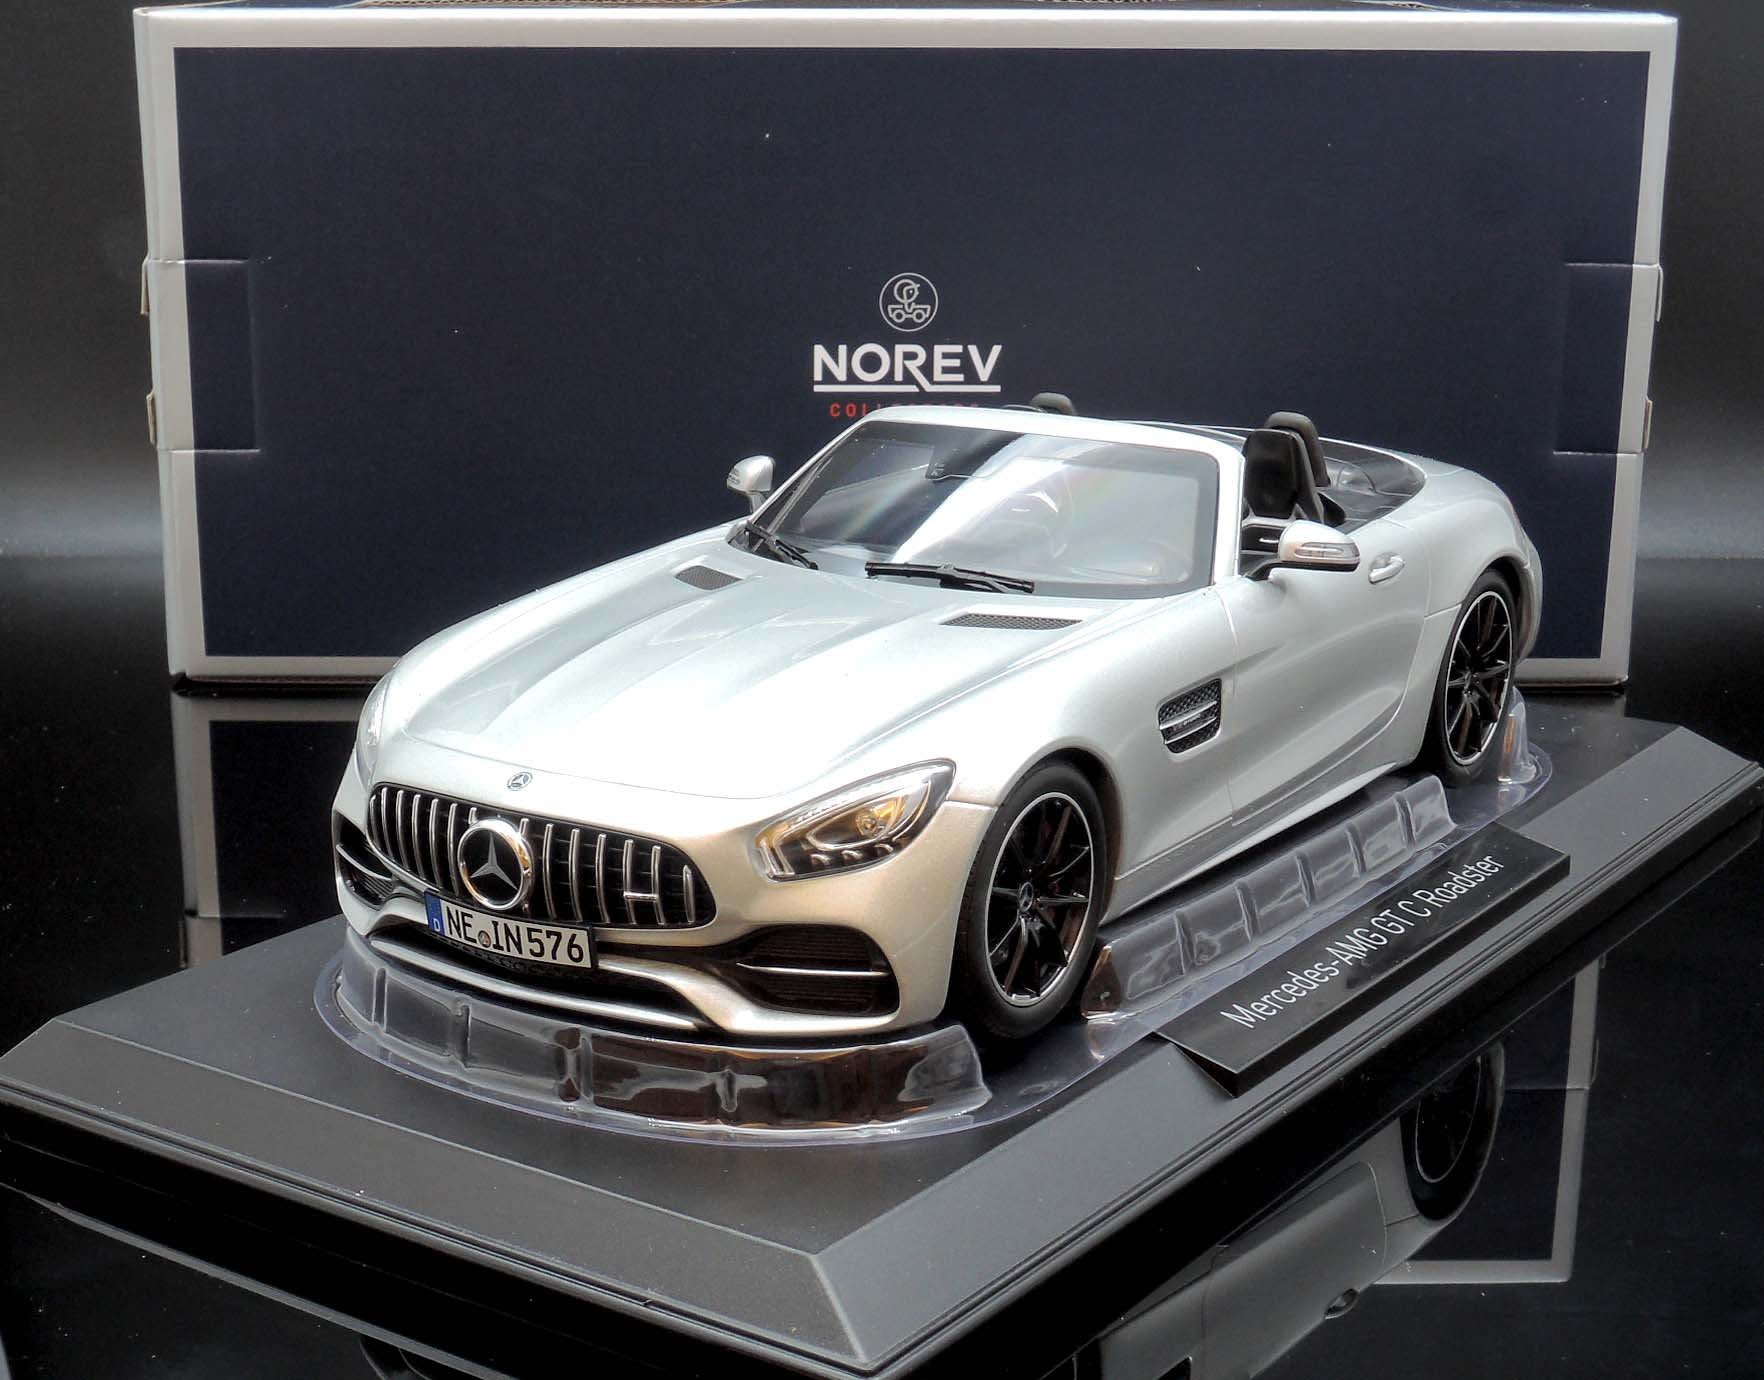 【M.A.S.H】現貨瘋狂價 Norev 1/18 Mercedes-Benz AMG GT C Roadster 銀